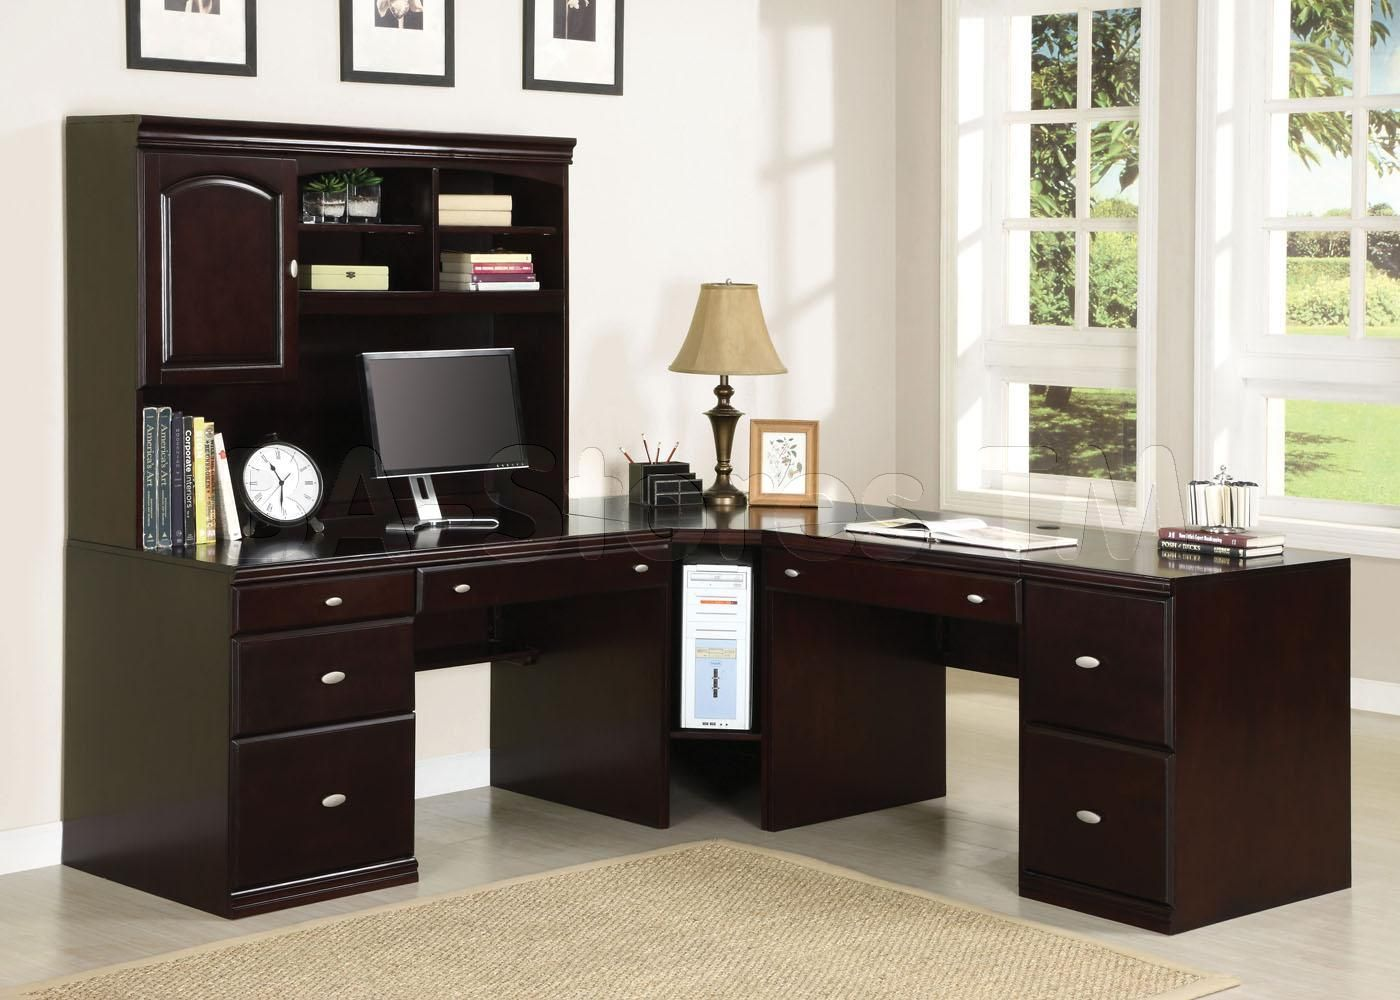 Home Office Desk Corner. Cape Office Set In Espresso (office Desk, Hutch,